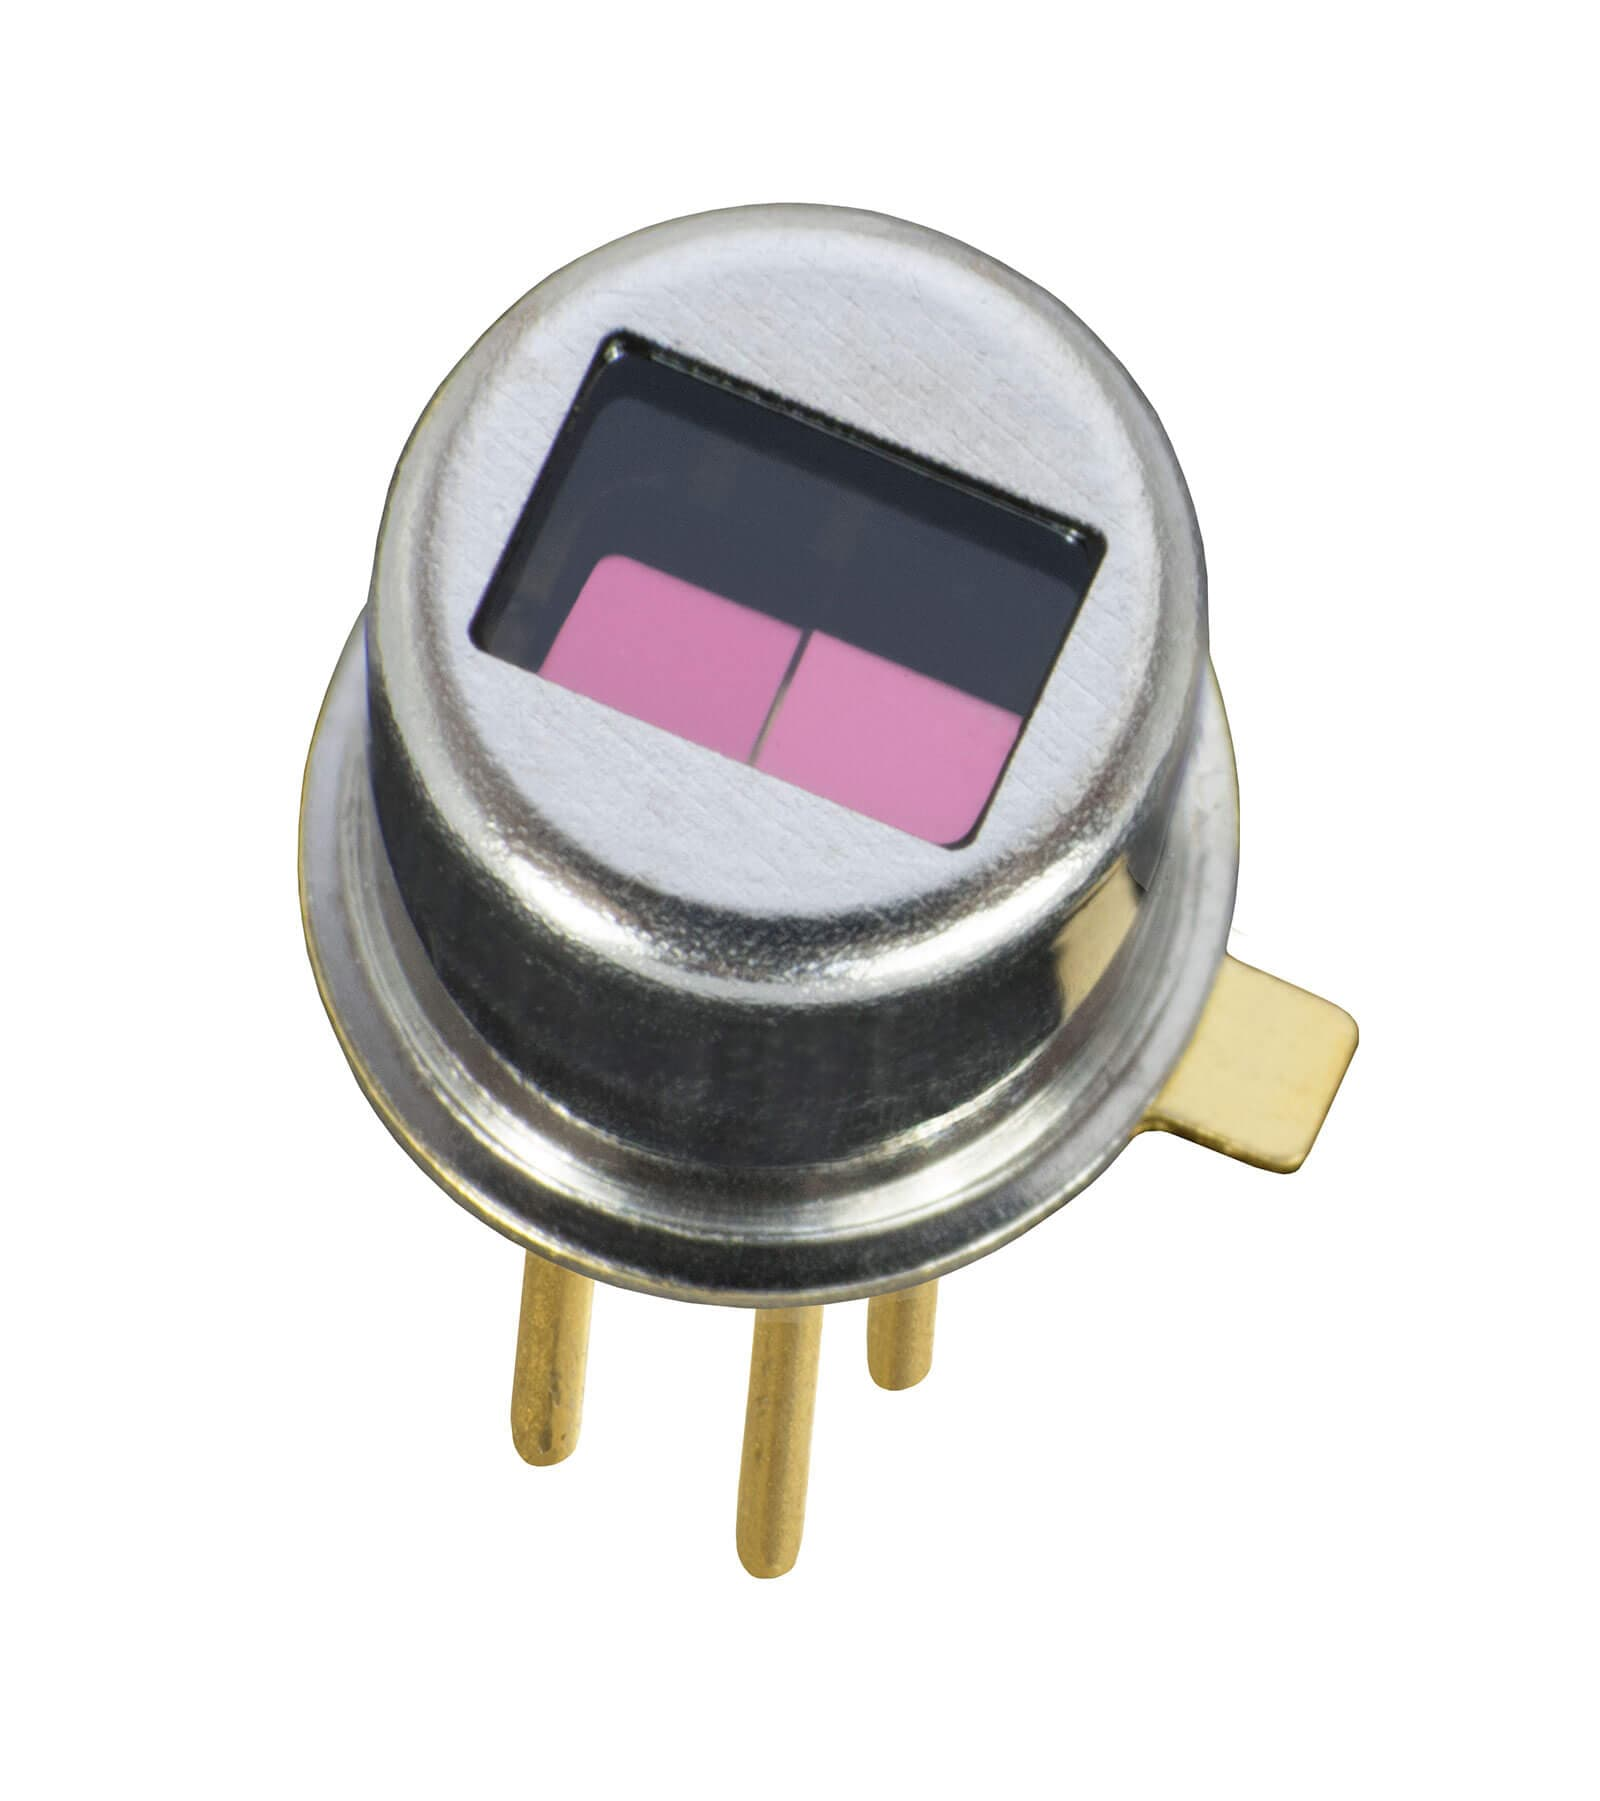 Miniaturized two-channel detector LRM-102 from InfraTec